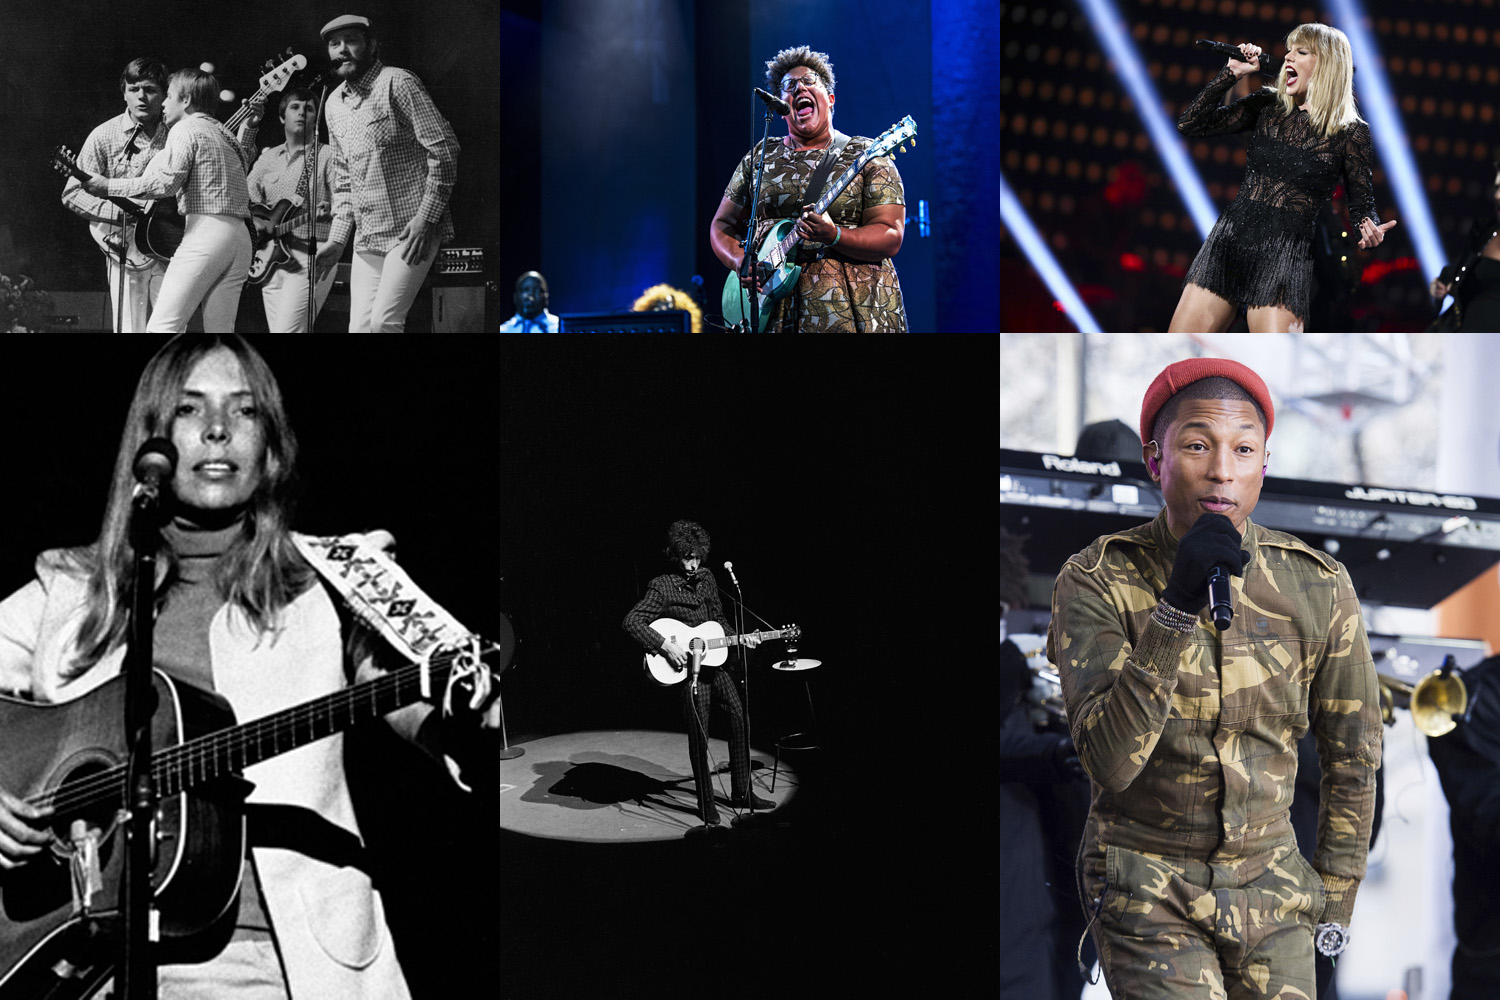 (Clockwise From Top Left) The Beach Boys, Brittany Howard of the Alabama Shakes, Taylor Swift, Pharrell Williams, Bob Dylan and Joni Mitchell in various performances throughout their respective careers. (AP/WikiCommons)